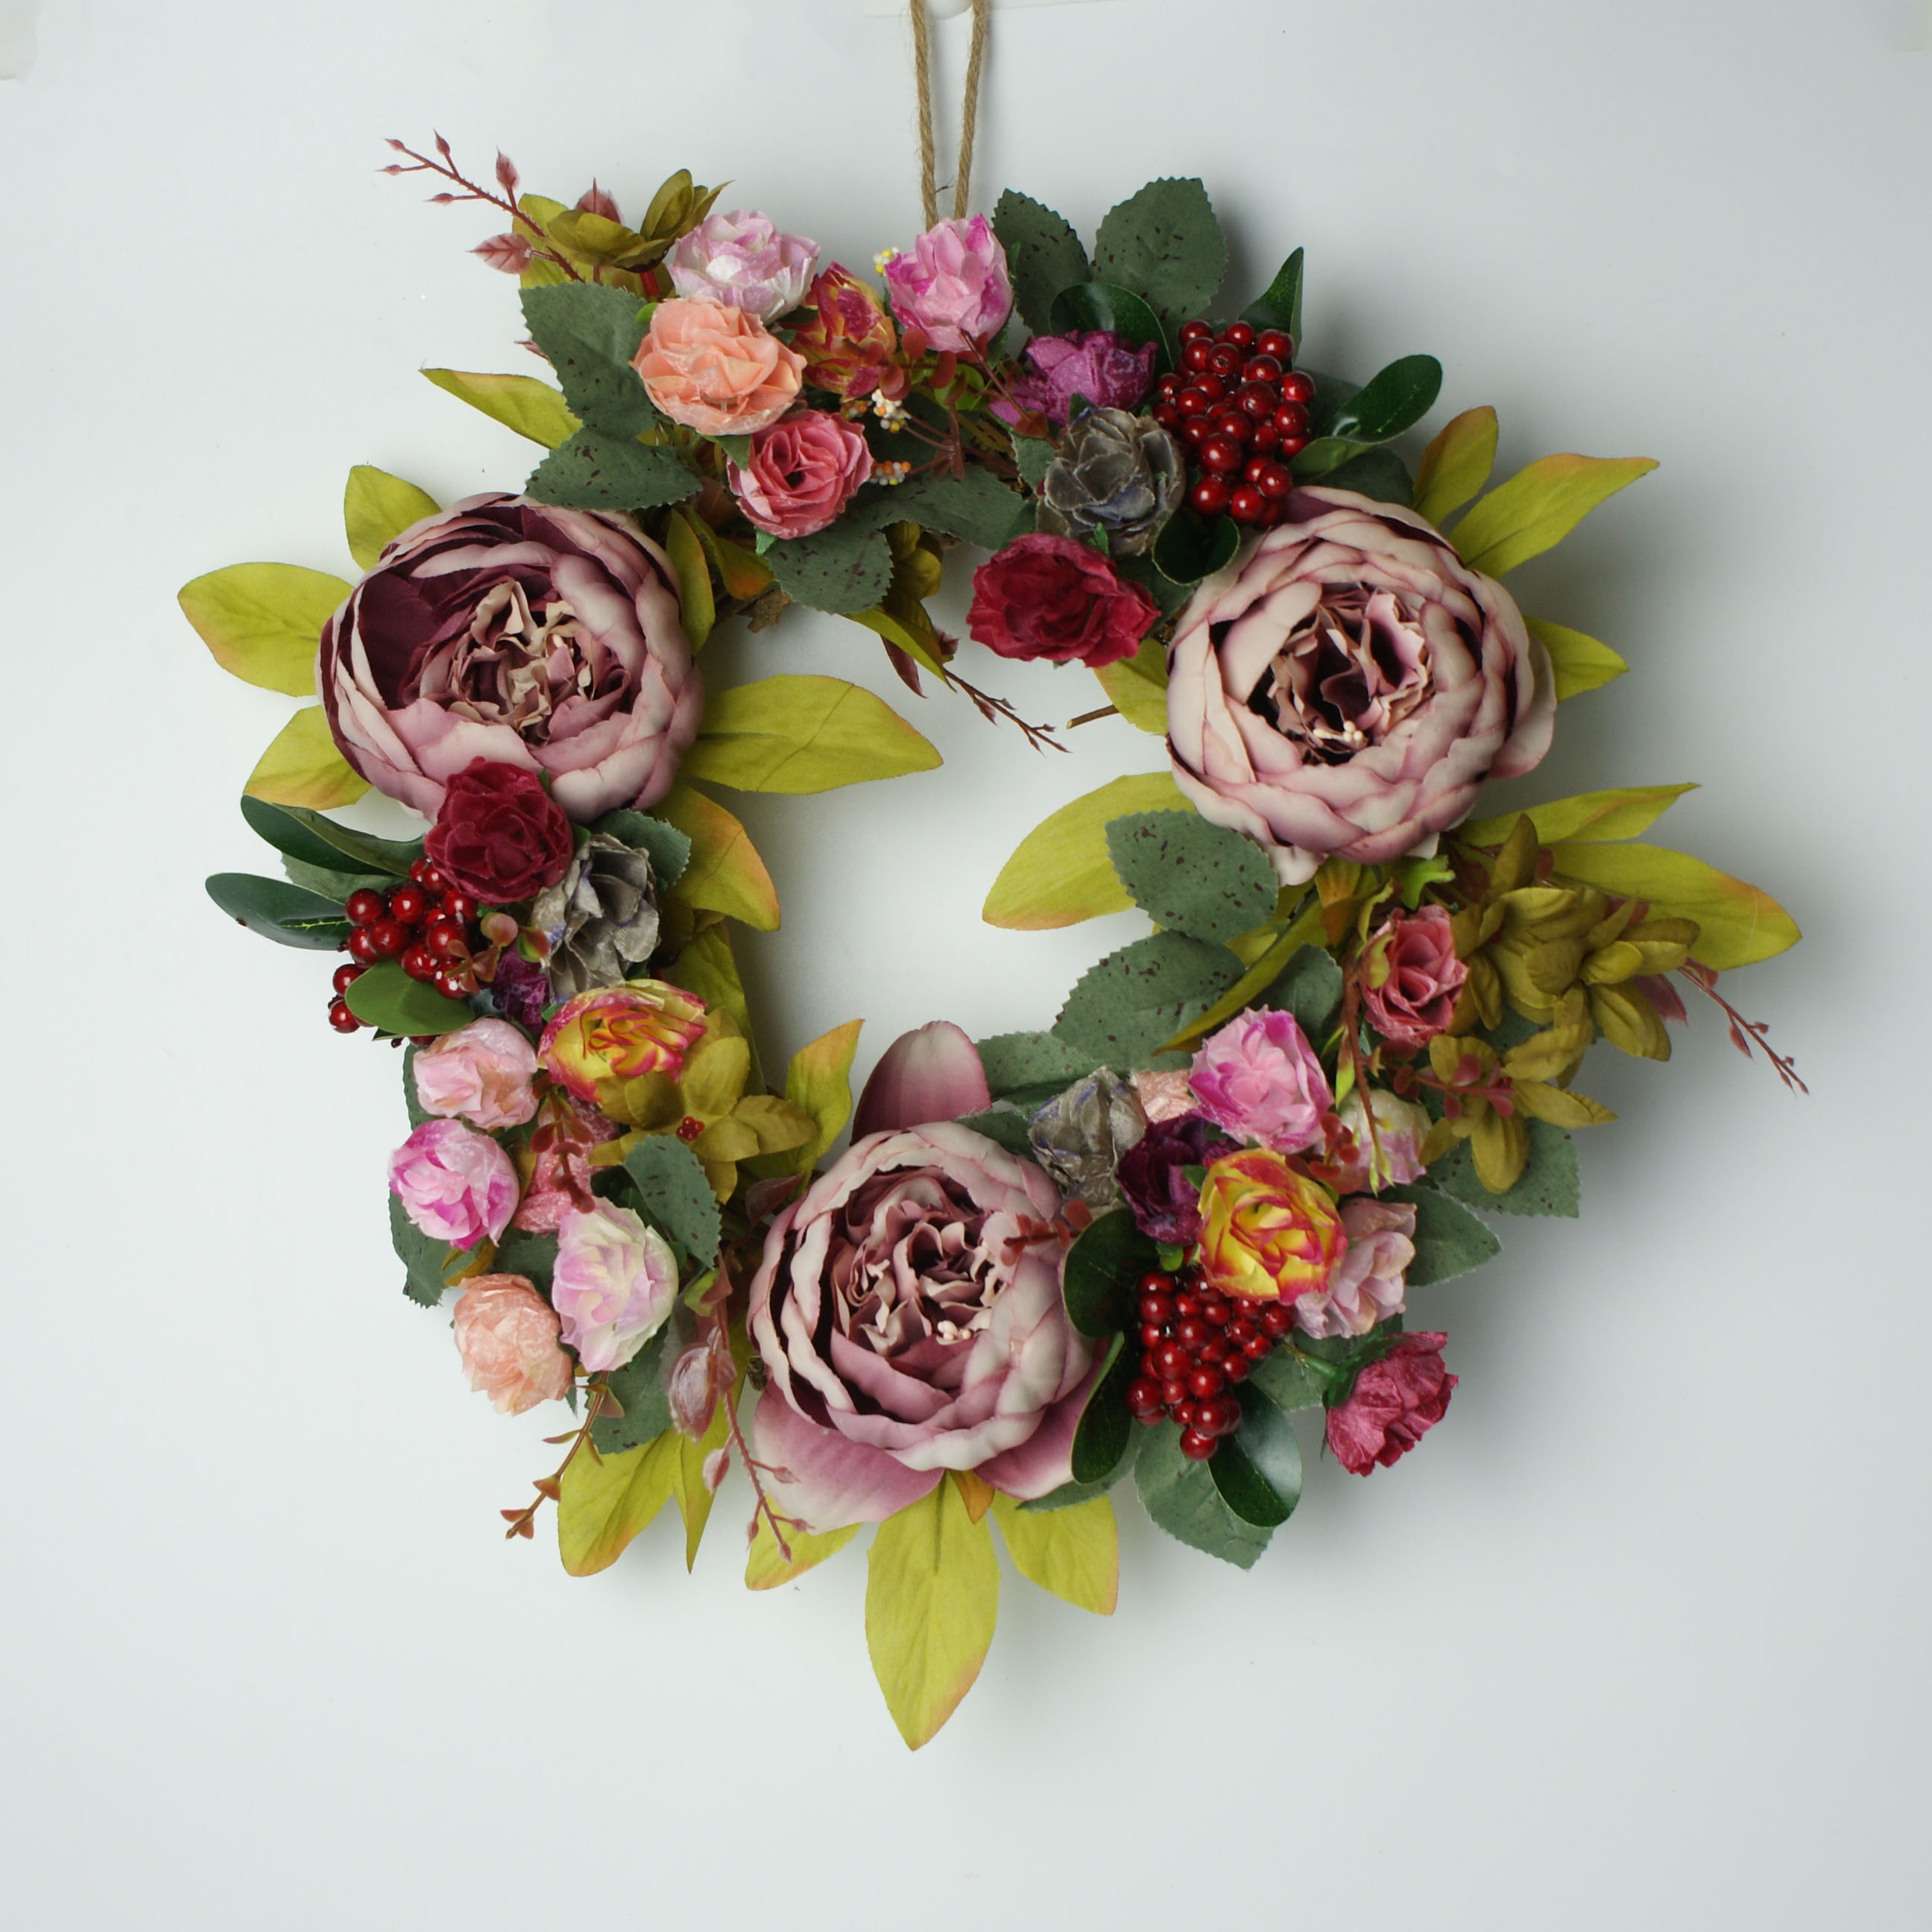 craft wreath ideas christmas ghk to holidays ornament door diy doors wreaths make how a holiday